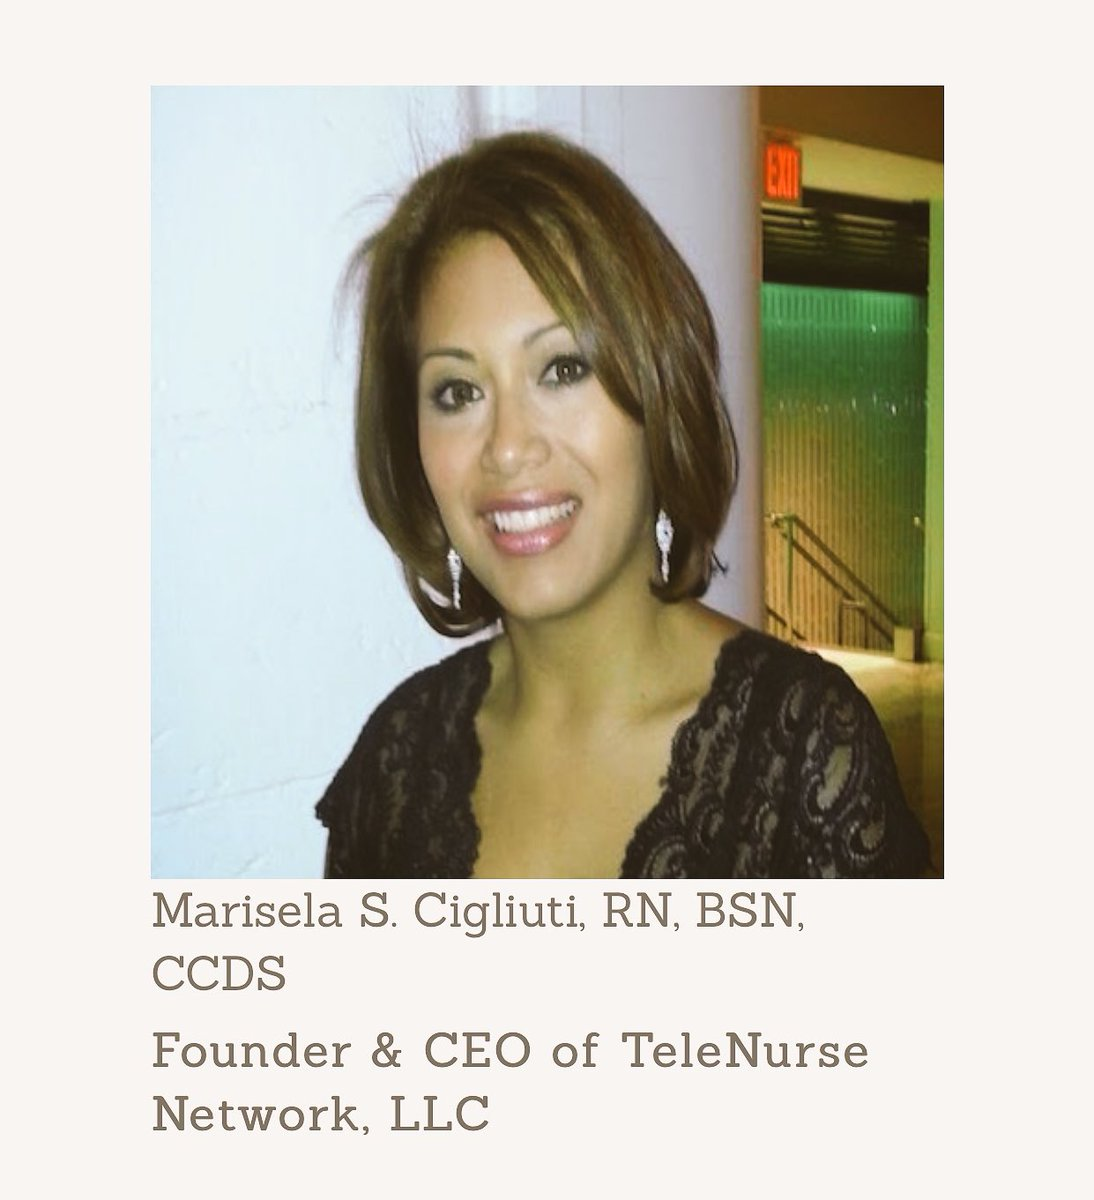 Thrilled to have Marisela Cigliuti #RN, #Nurse #Entrepreneur &amp; #CEO of @TeleNurse_Net as one of #mentors at the #Healthcare #hackathon!<br>http://pic.twitter.com/h5ykxSEENX